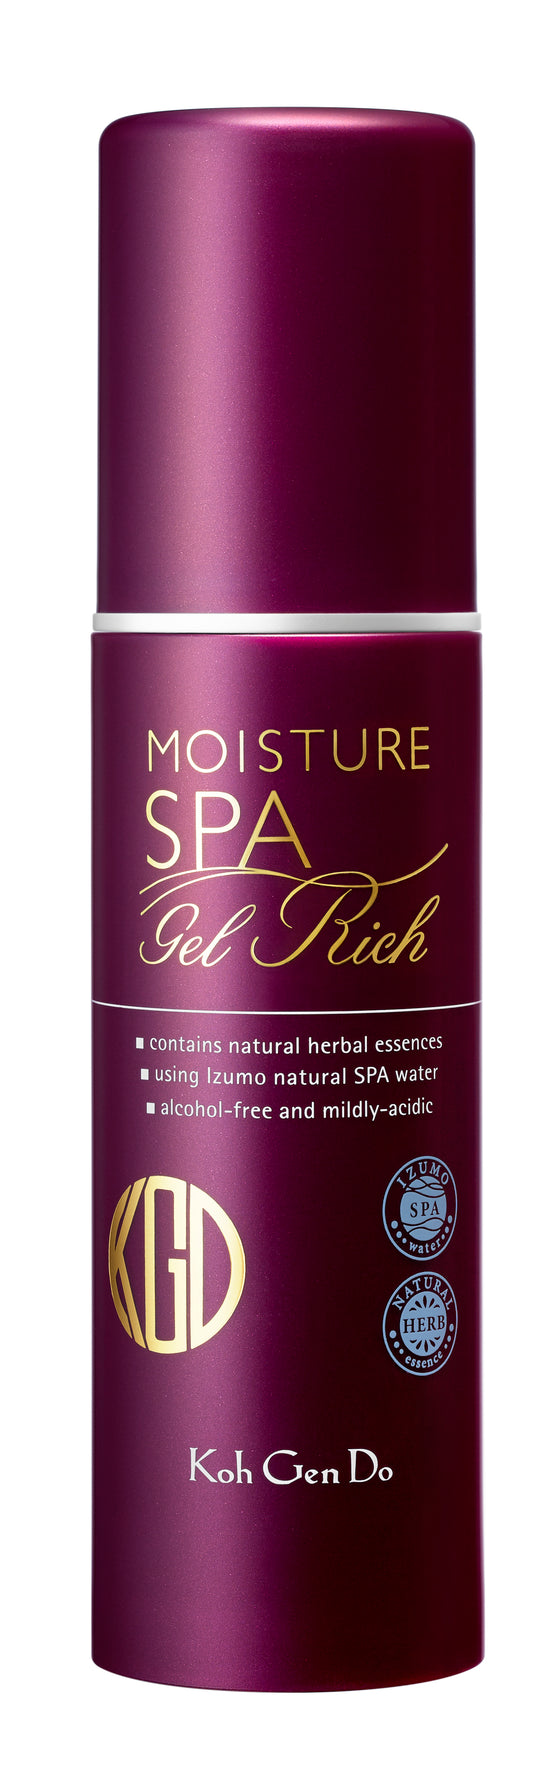 ALL IN ONE MOISTURE GEL RICH